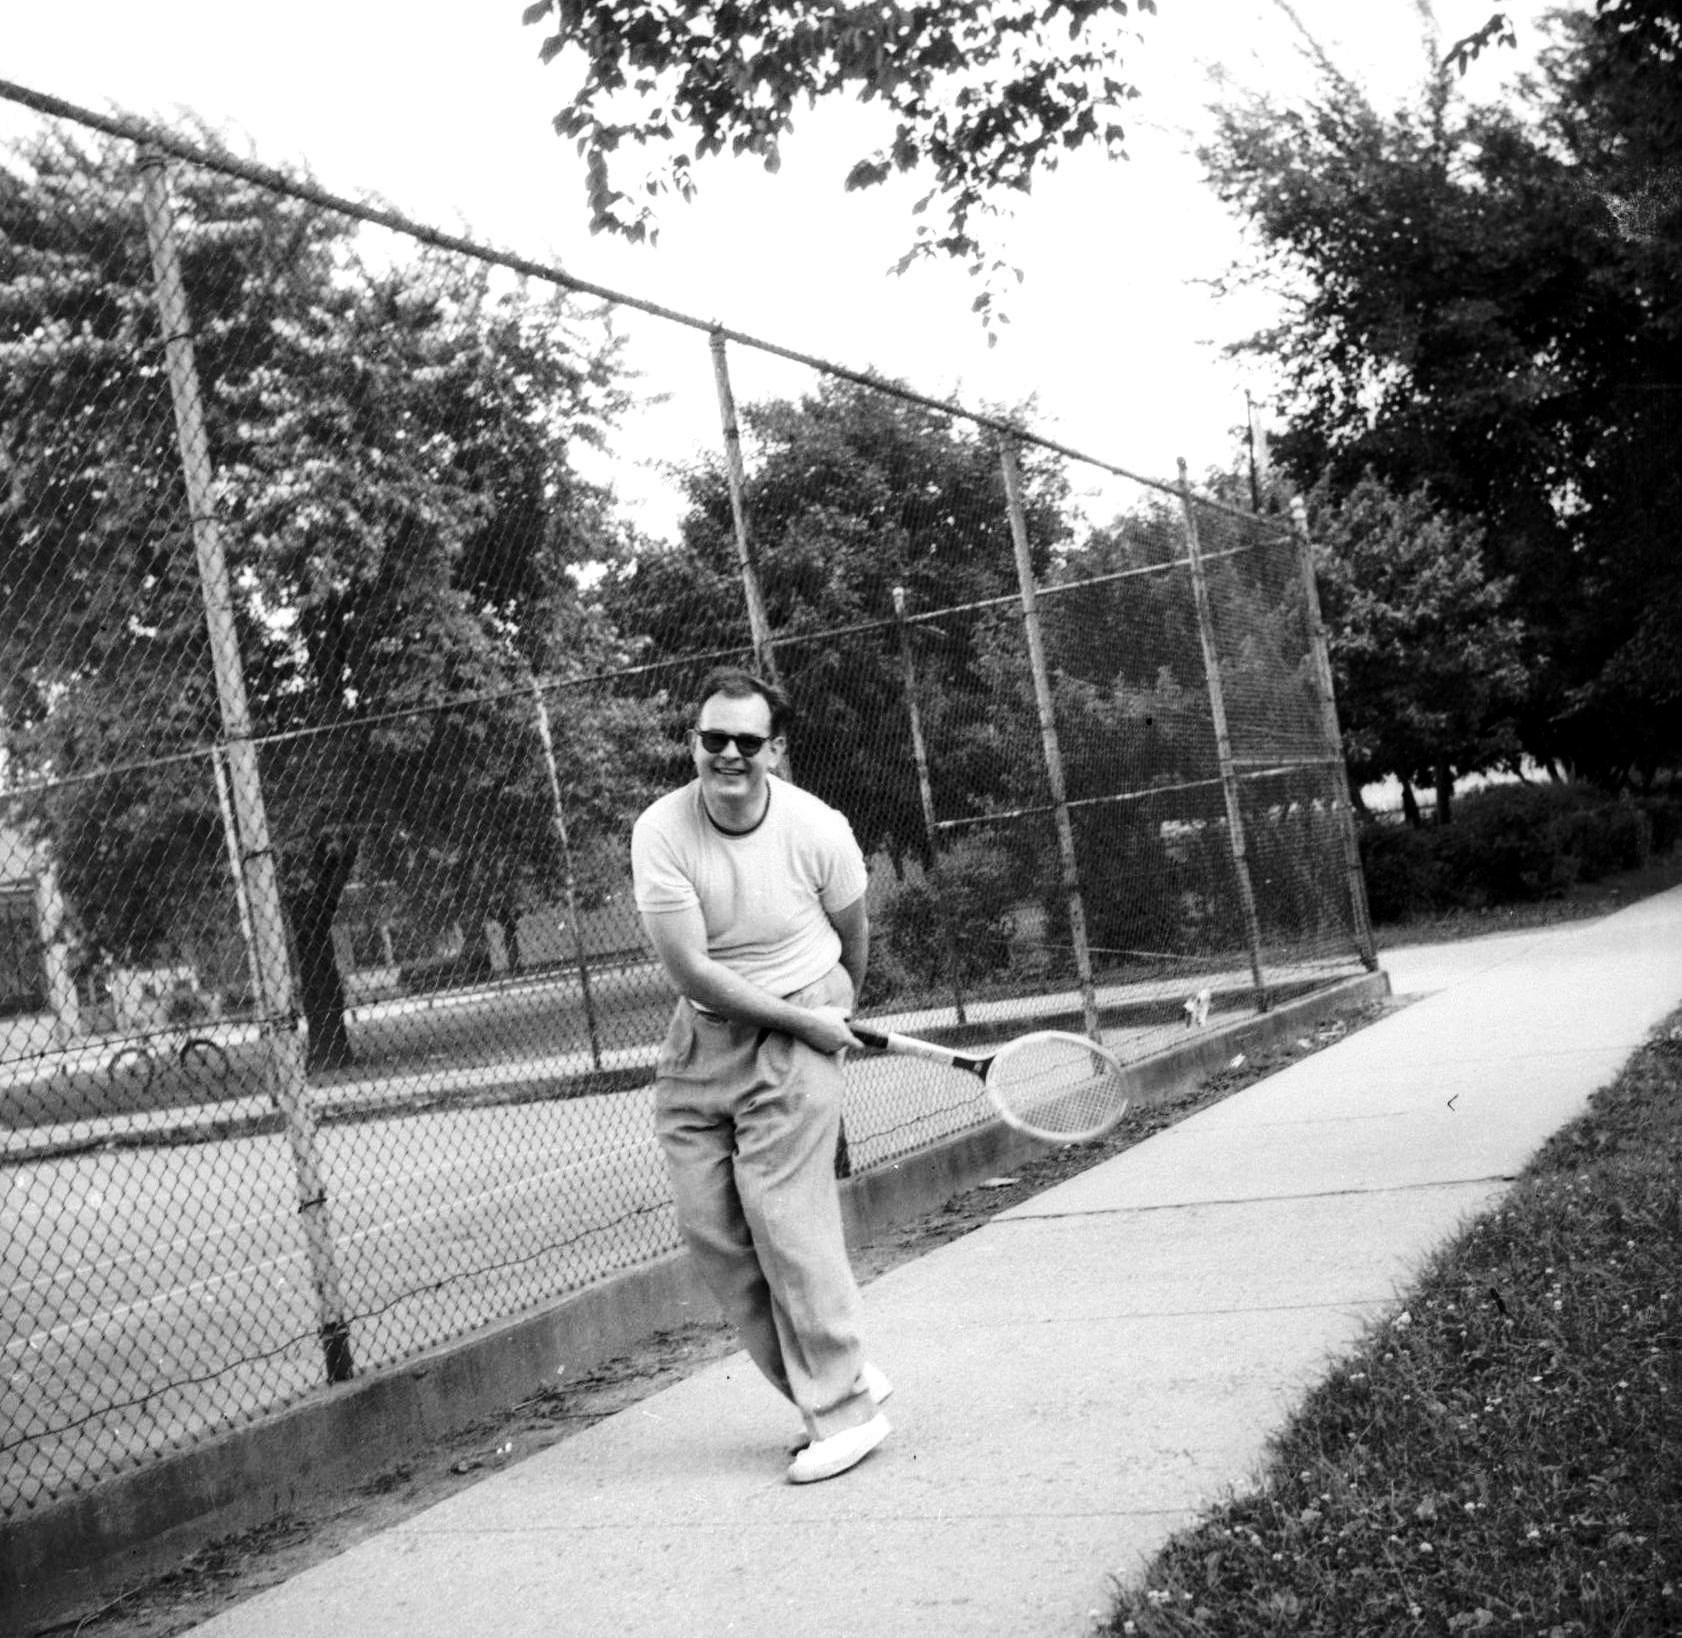 dad tennis note he is outside the court 1